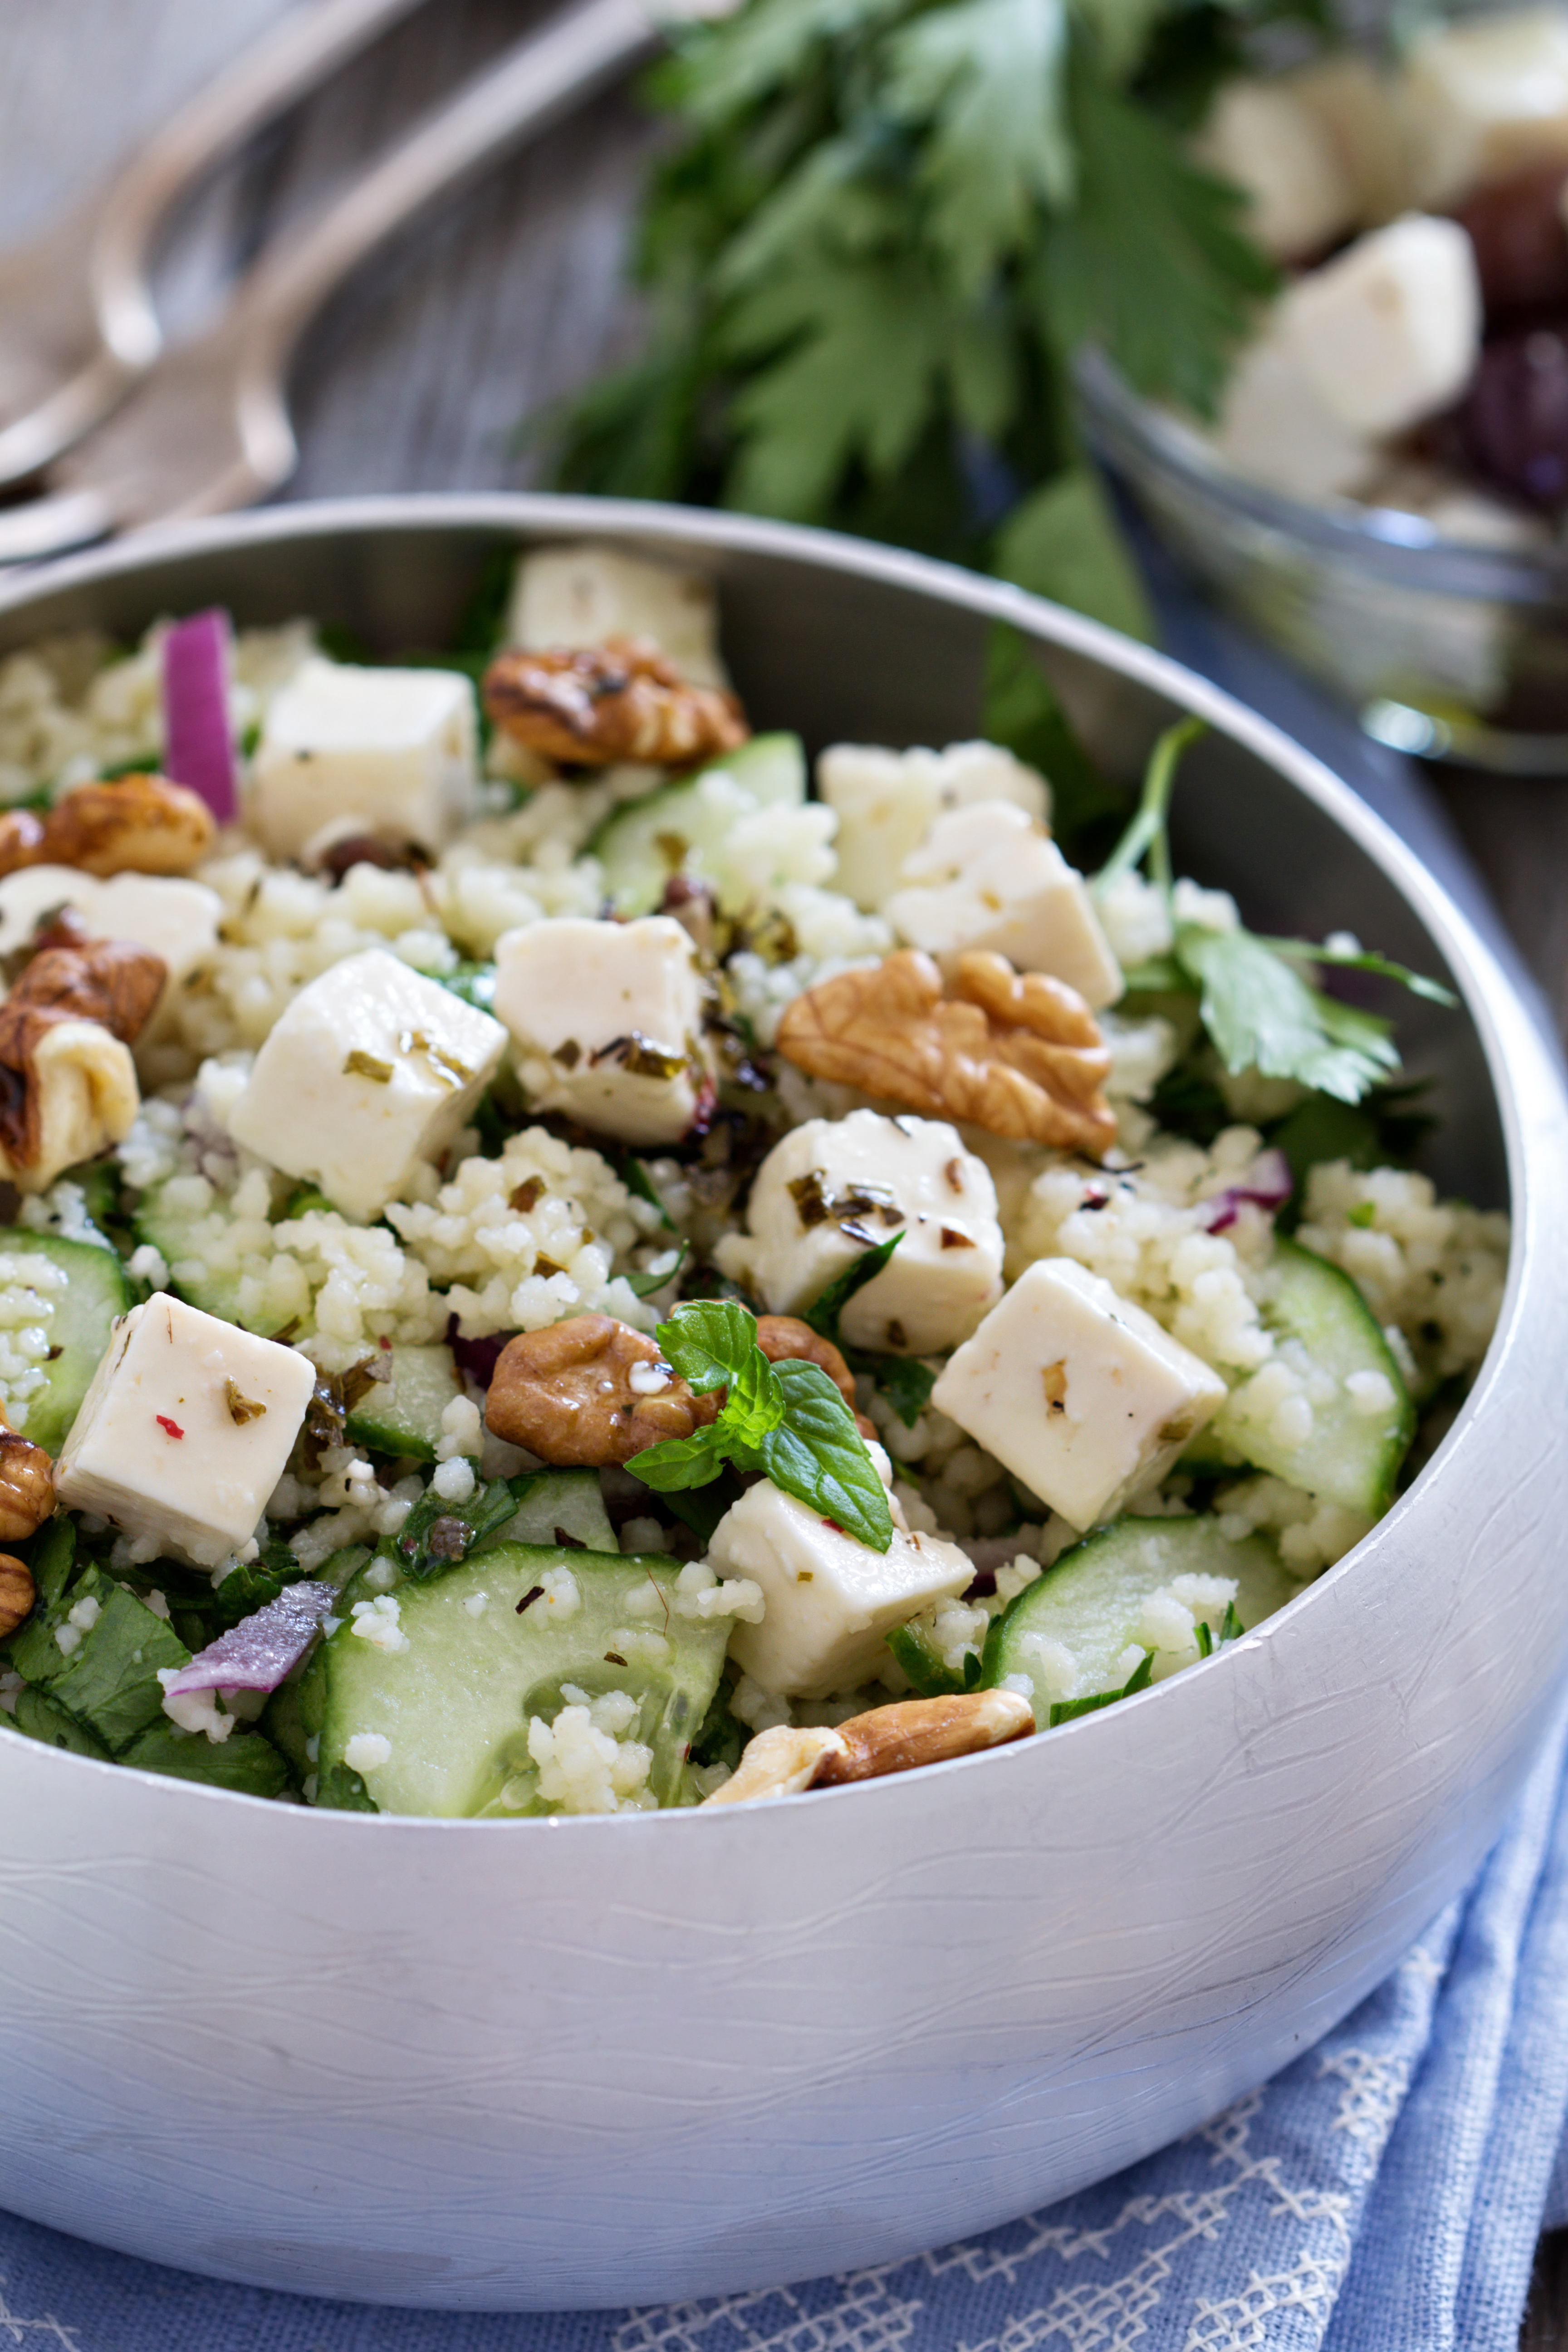 Couscous Salad With Feta and Mint recommend